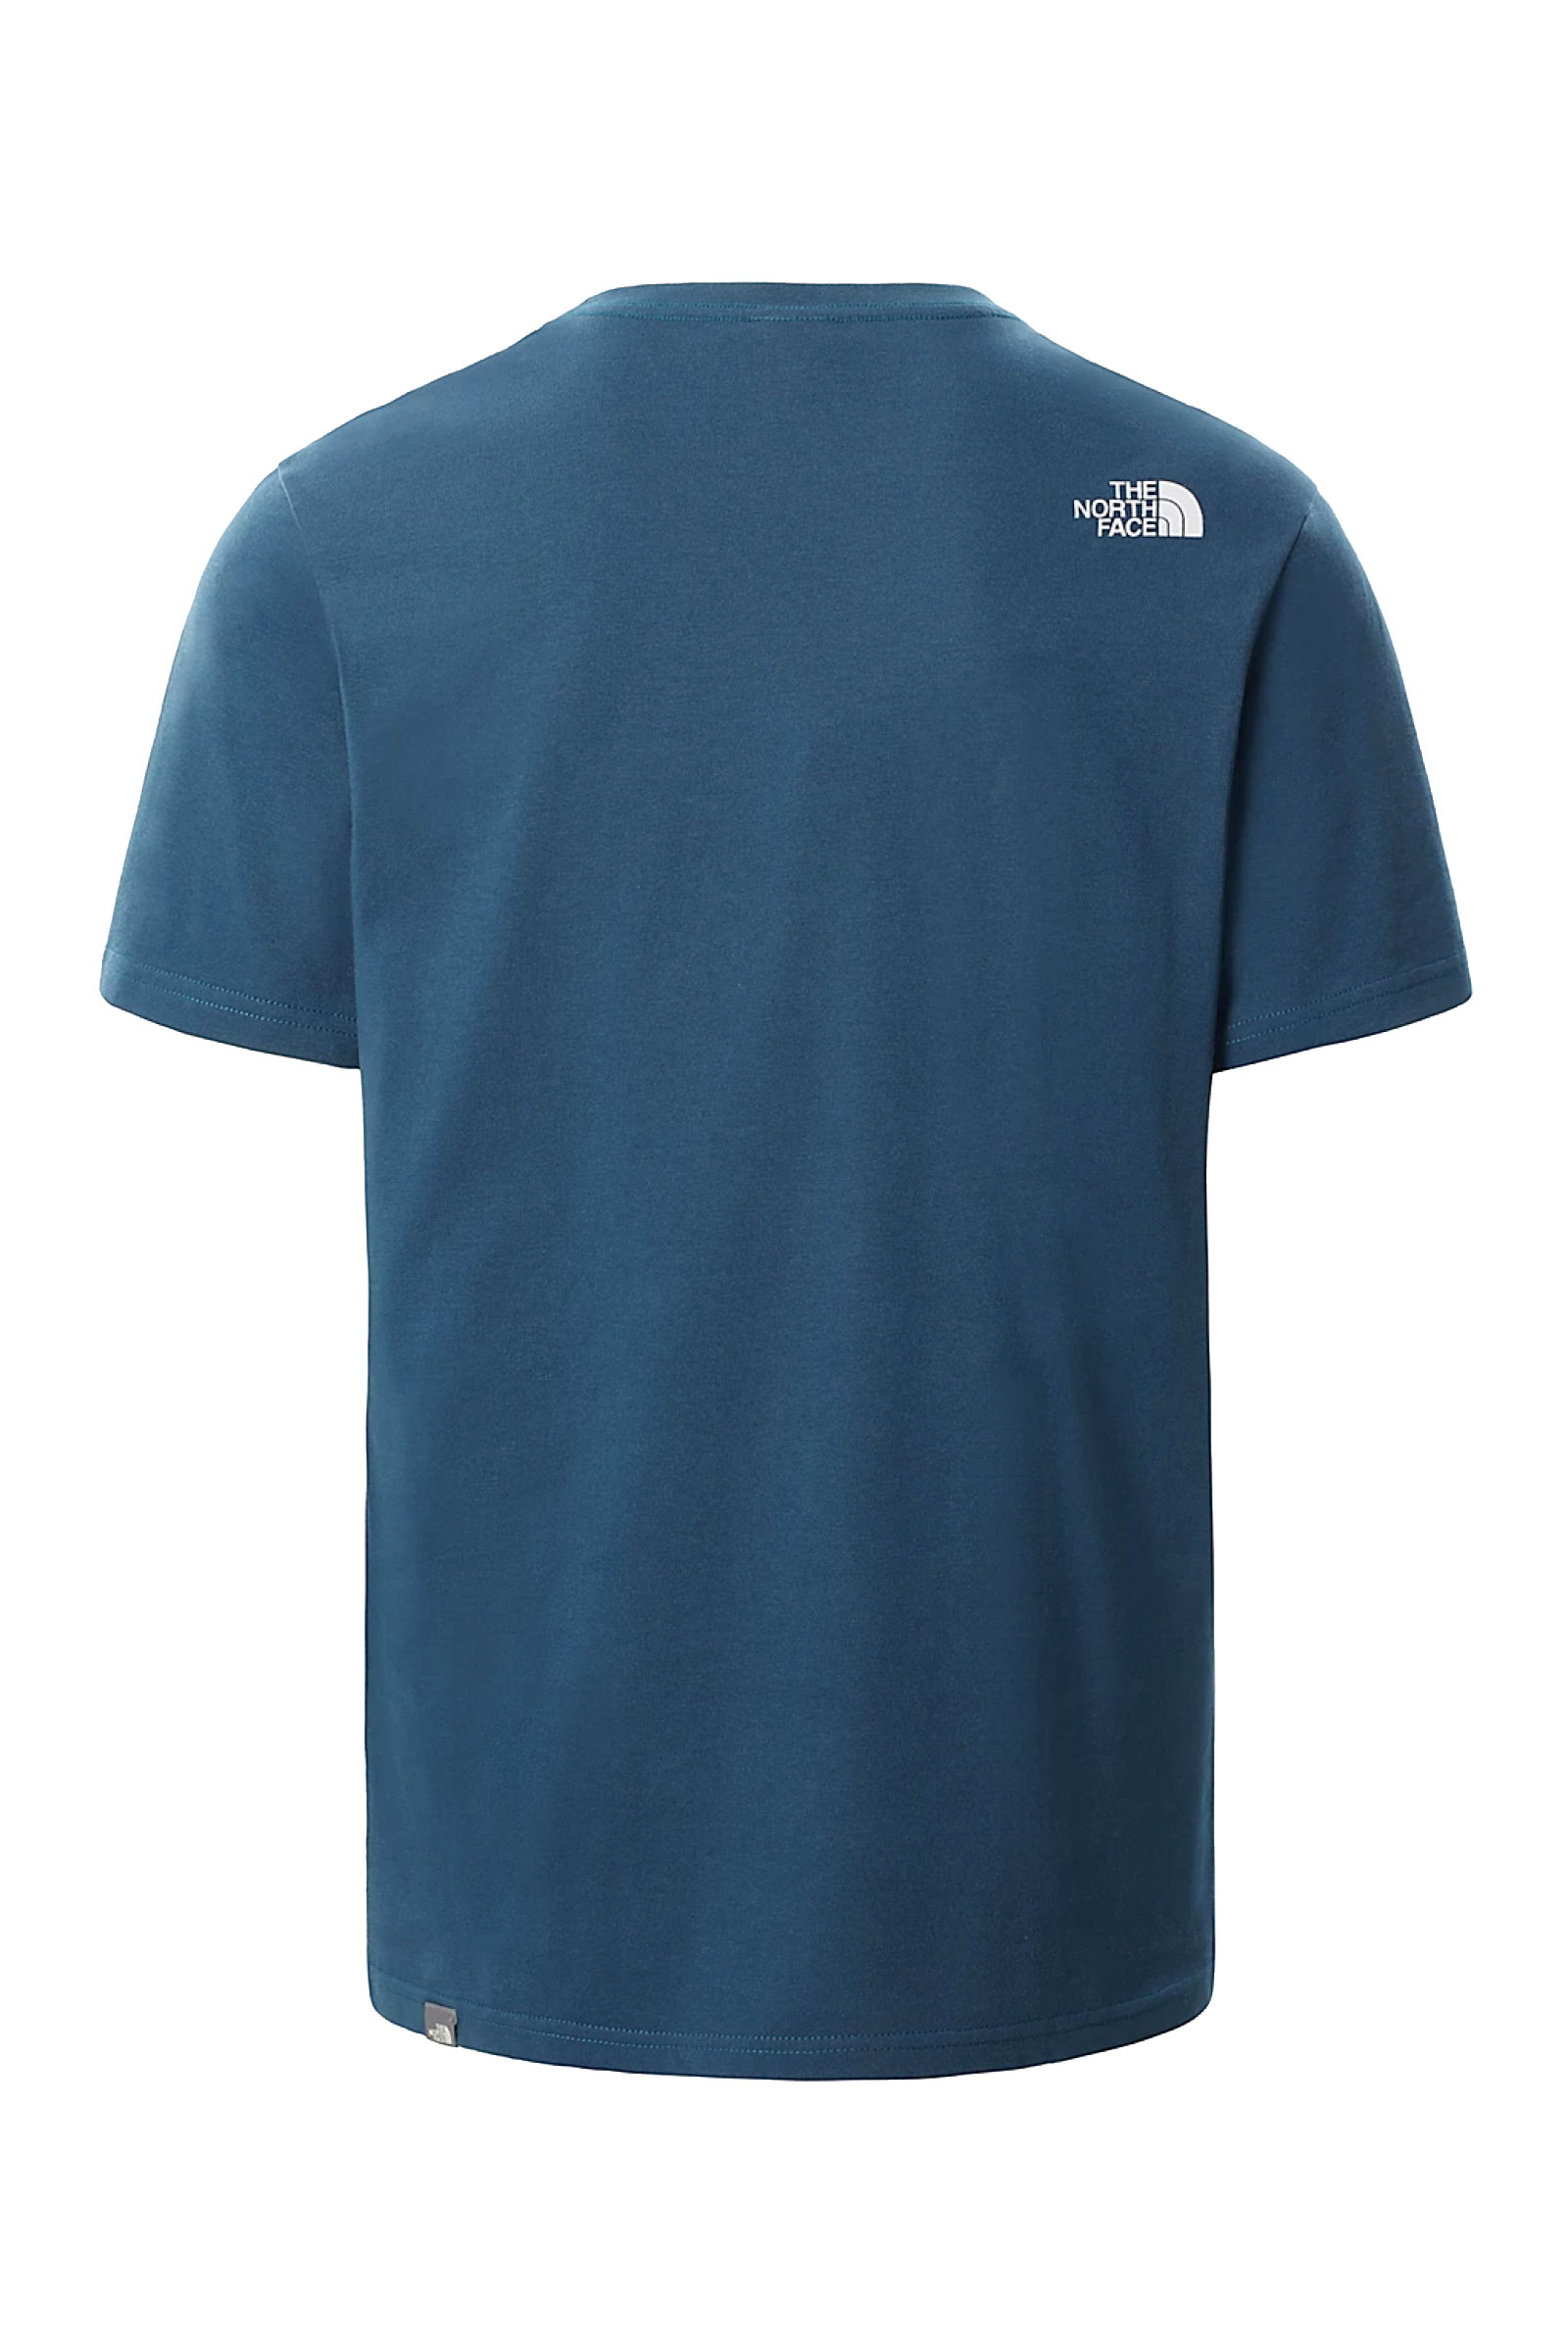 THE NORTH FACE T-Shirt Uomo THE NORTH FACE | T-Shirt | NF00A3G2BH71